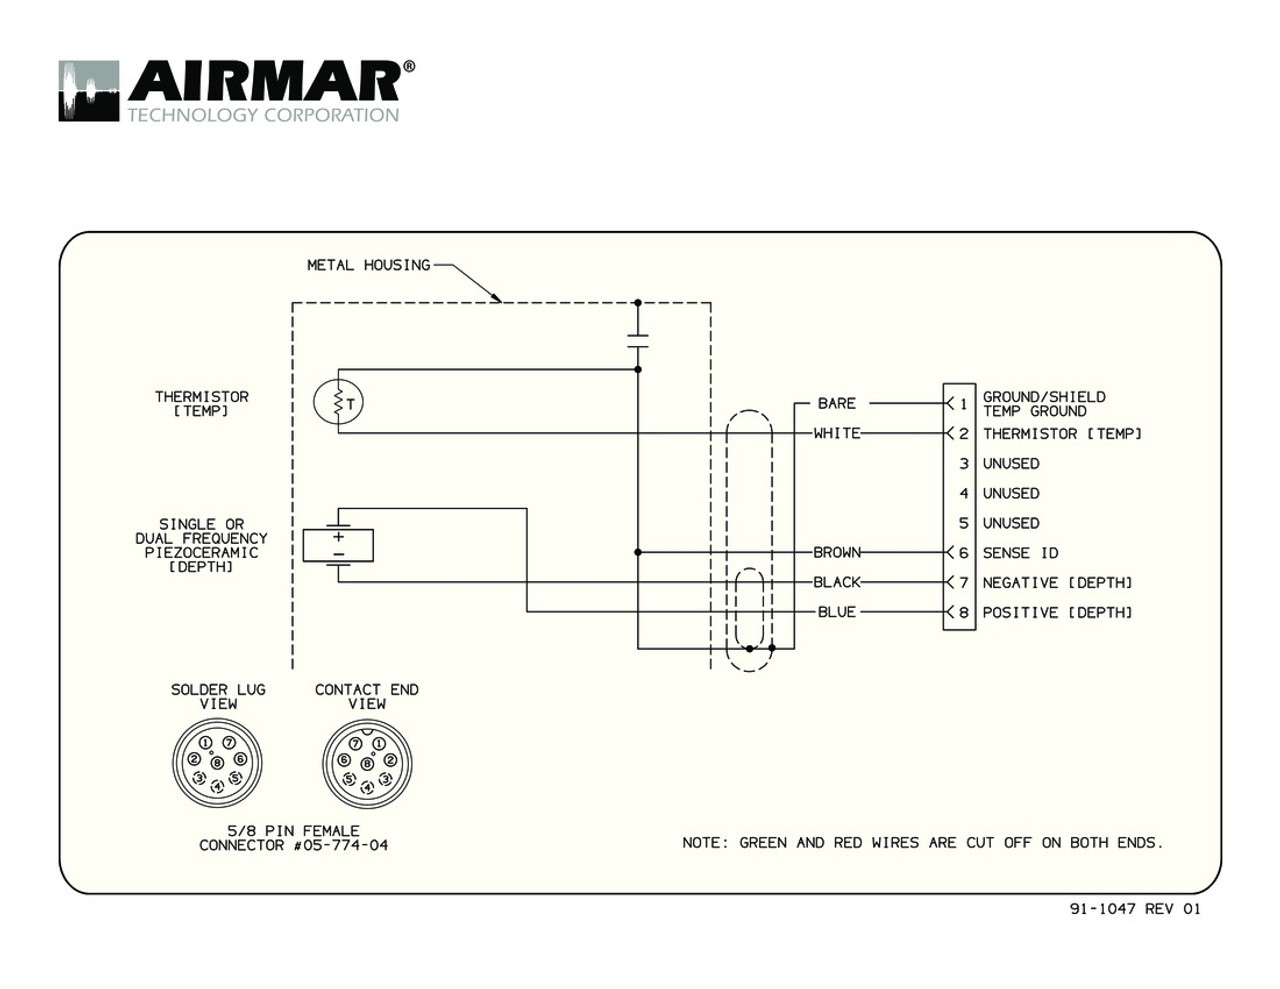 garmin 8 pin wiring diagram wiring libraryairmar wiring diagram garmin b117 8 pin (d,t) blue bottle marine wiring